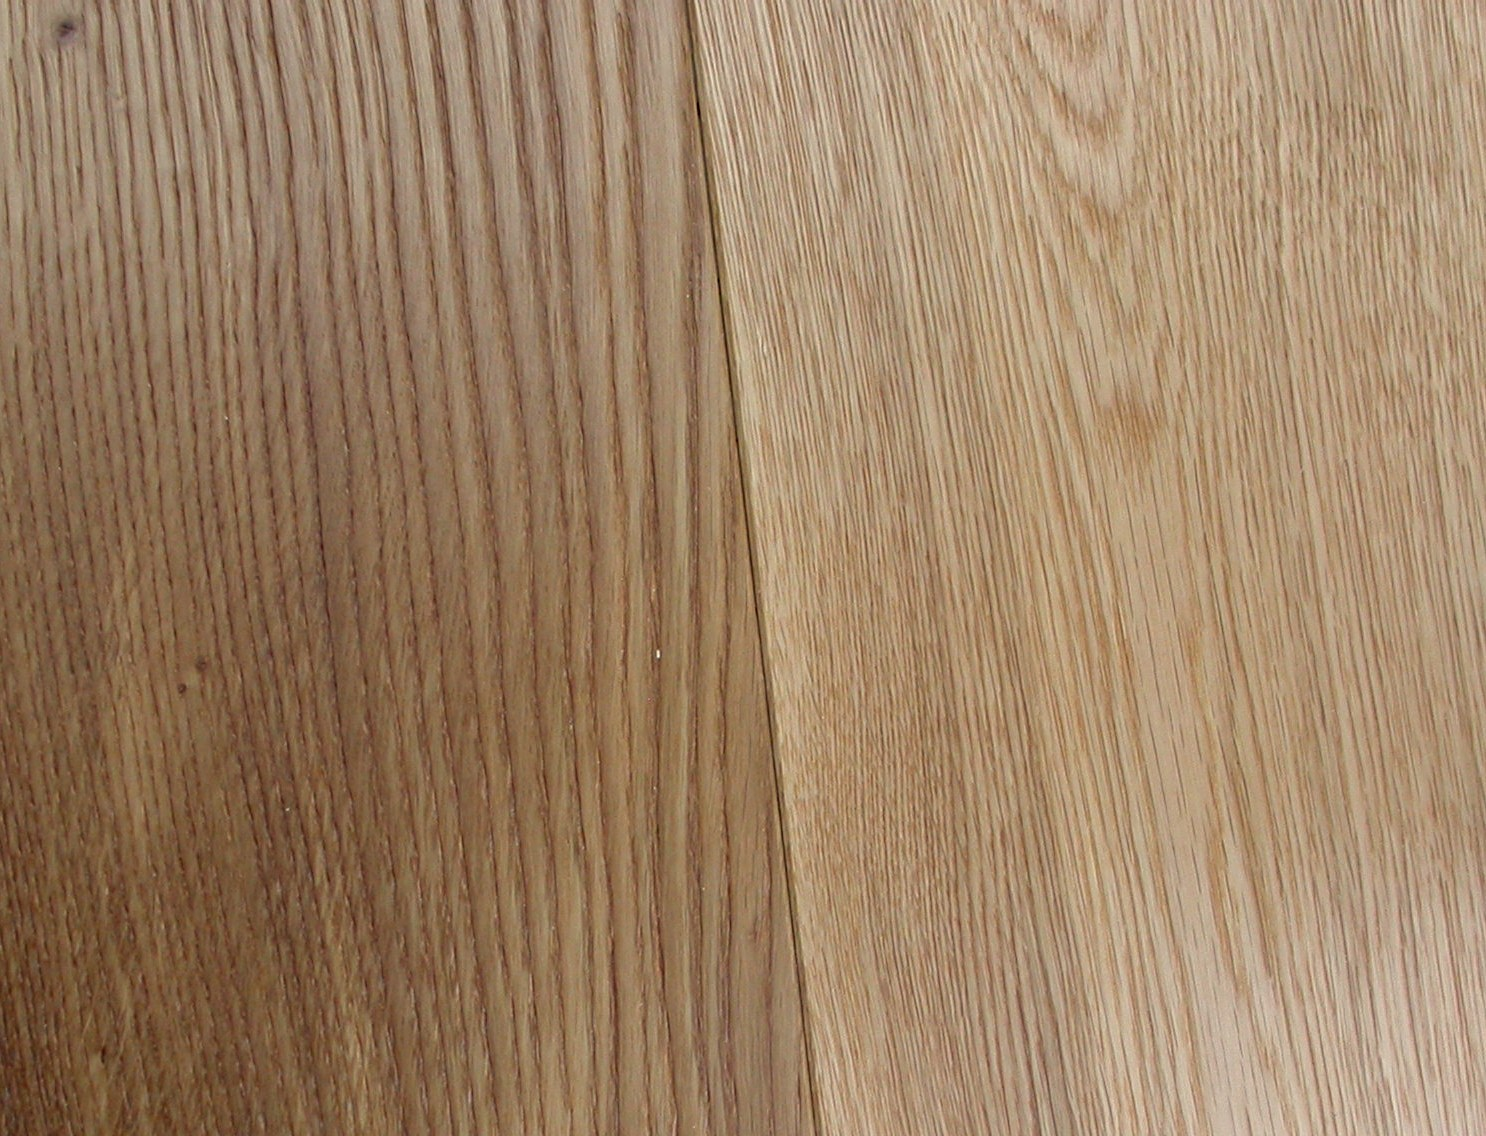 OAK RUSTIC BRUSHED & UV OILED 189